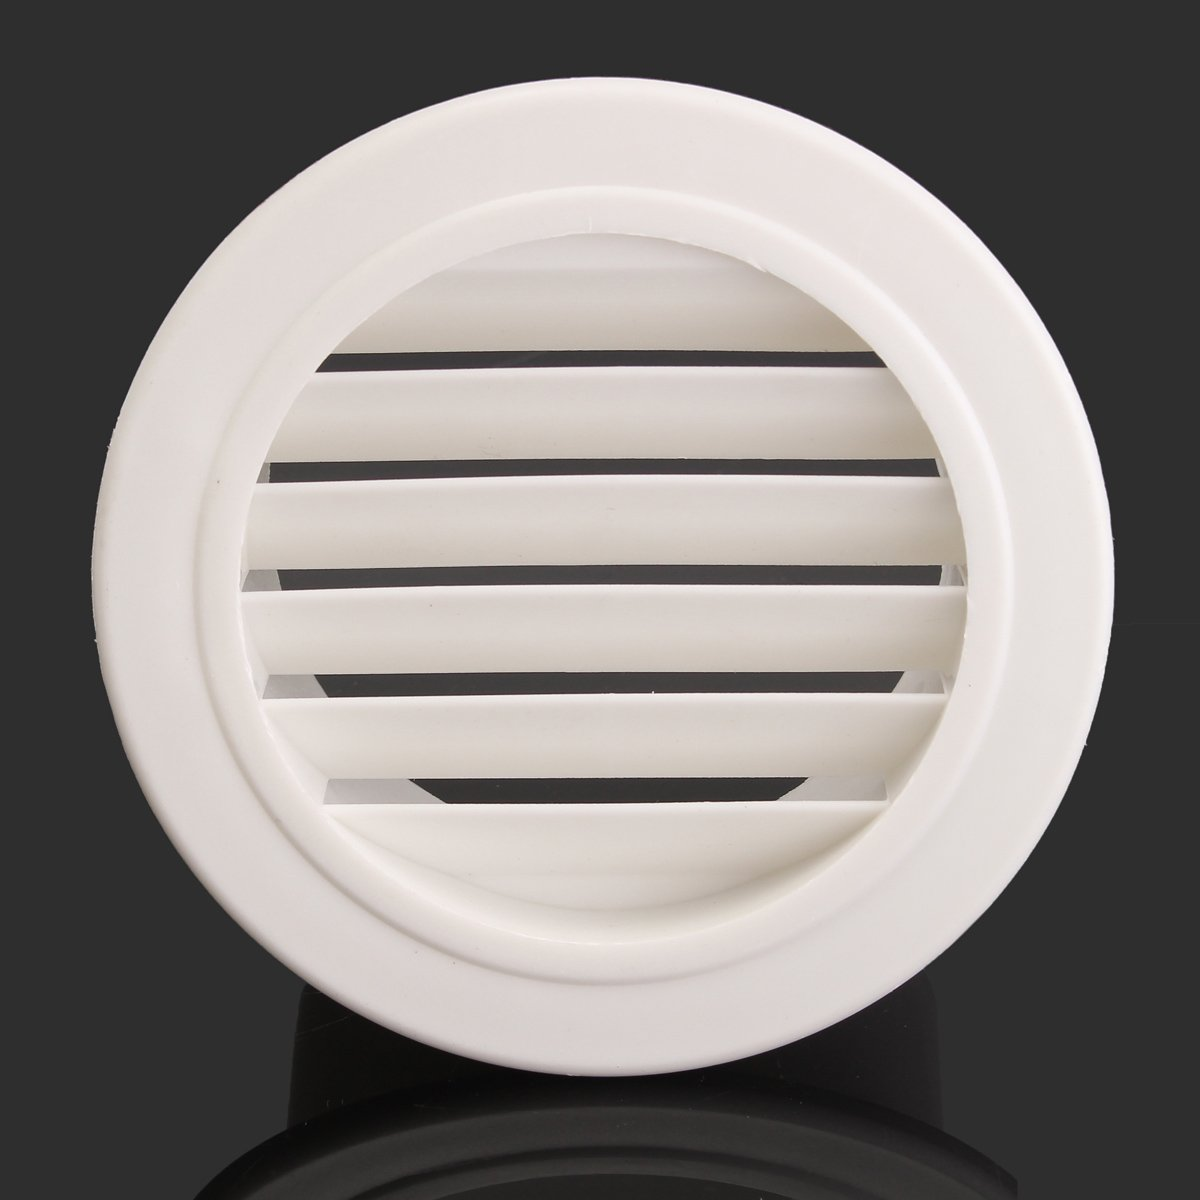 Yingte Air Vent ABS Grille,2-Pack 4 Inch White Color